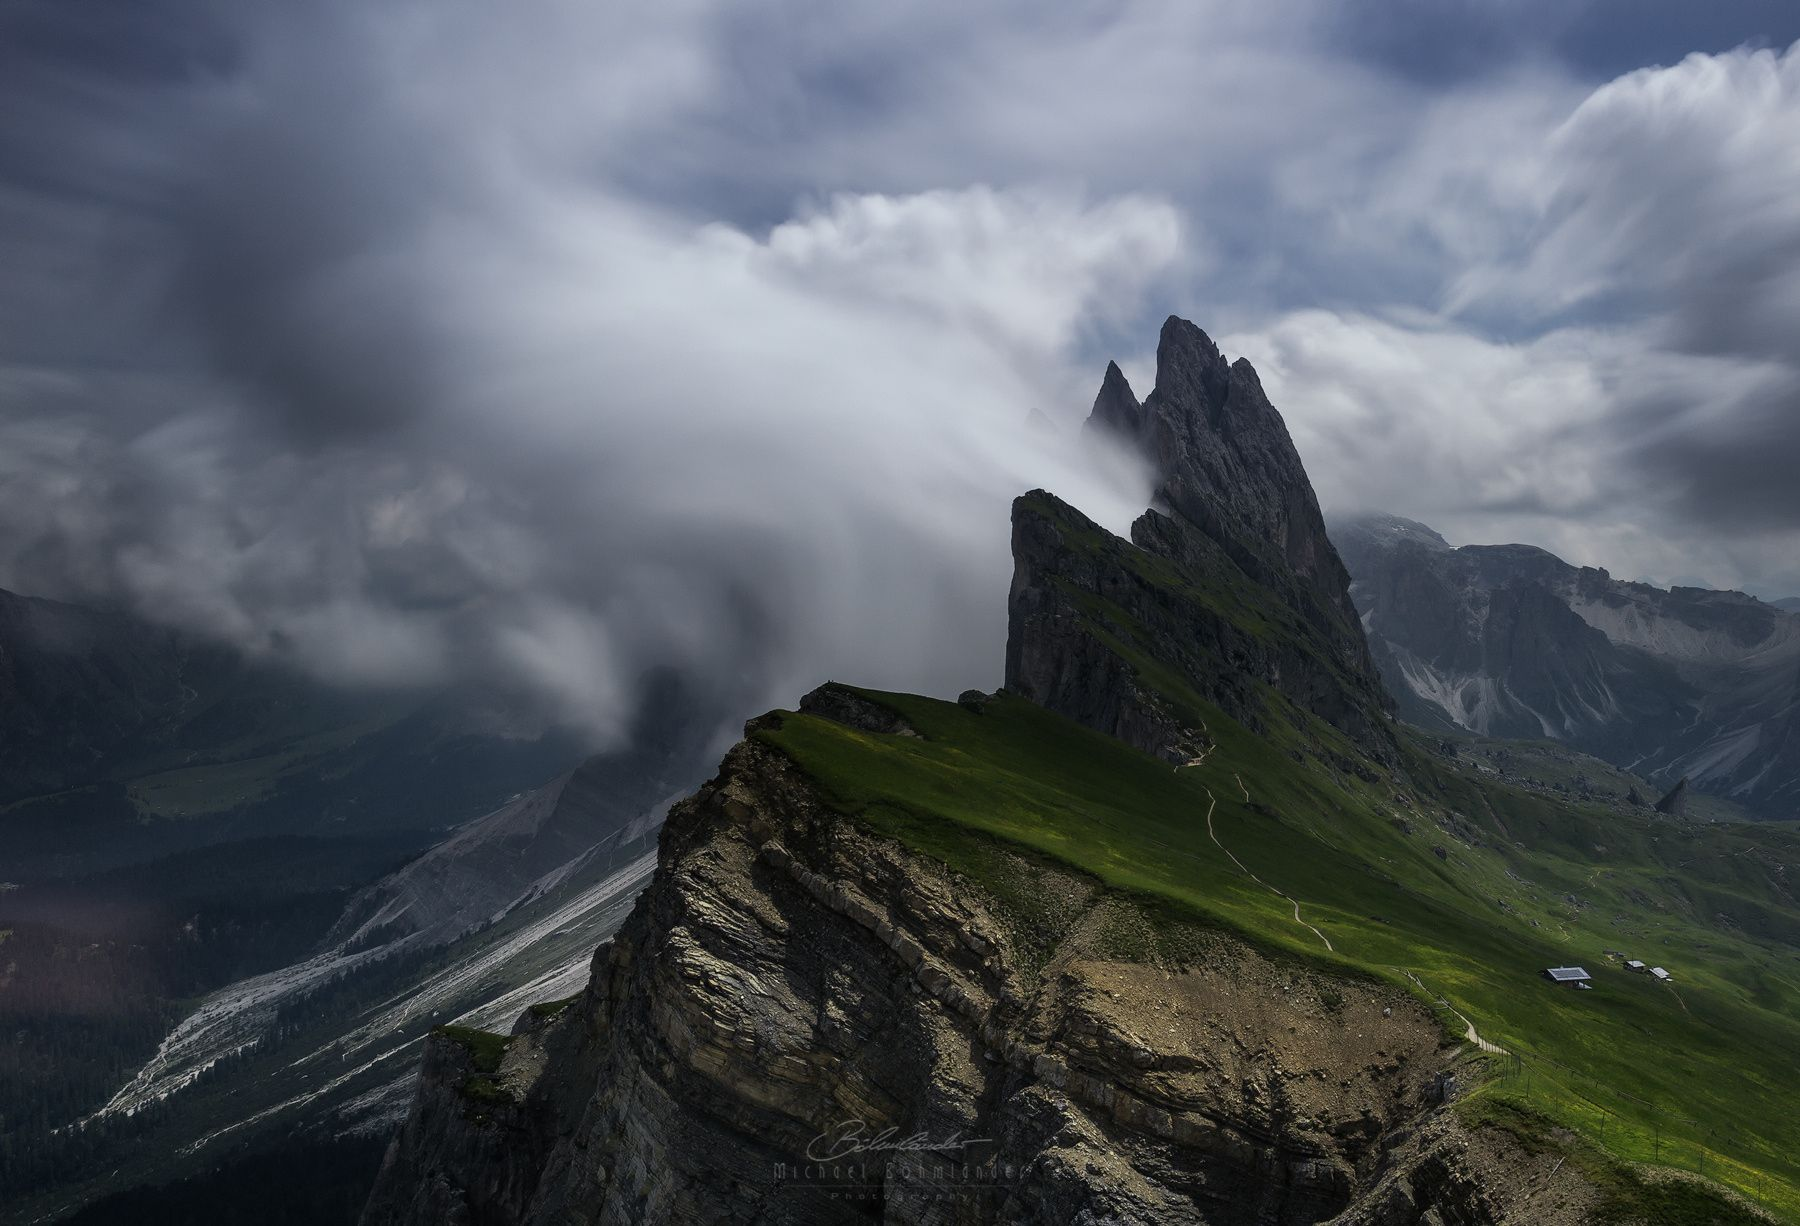 """The Tower - Famous location Seceda with amazing """"S"""" curve cloud scene   You can find me also here: <a href=""""http://facebook.com/MichaelBoehmlaender"""">Facebook</a> 